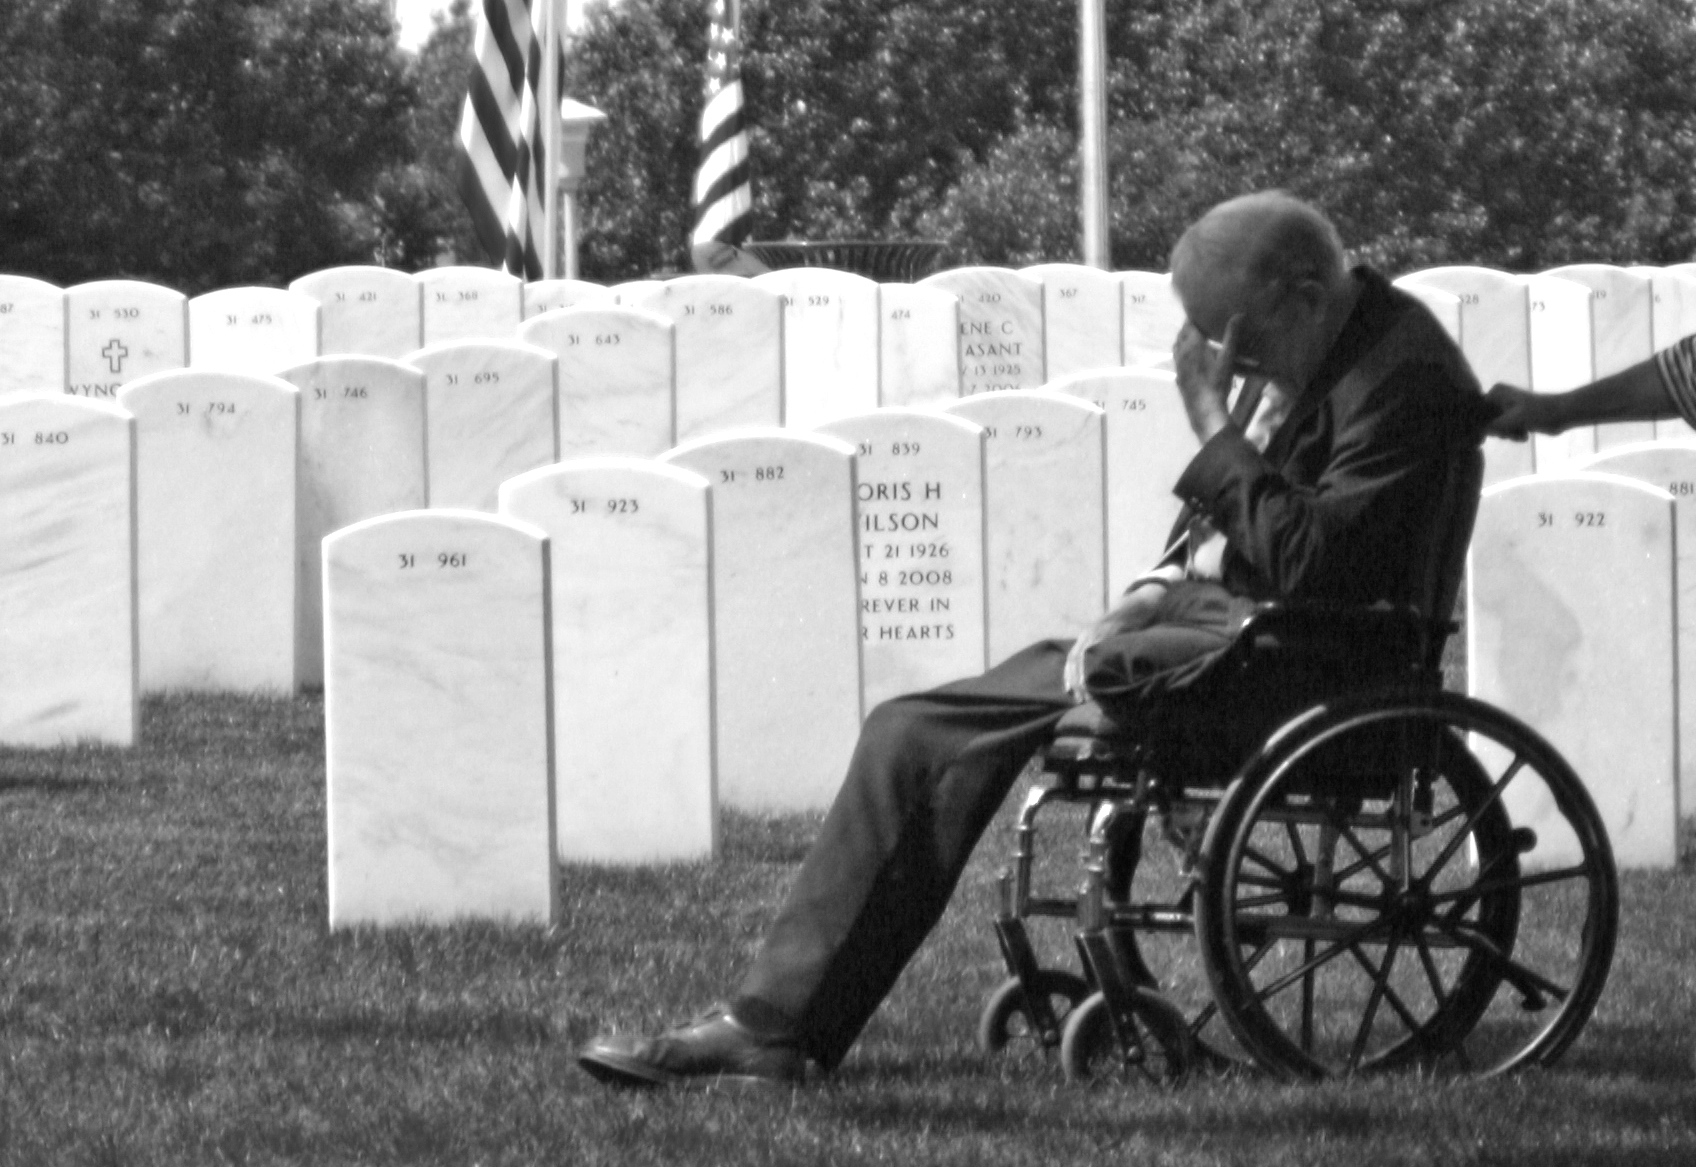 Some gave all – All gave some.